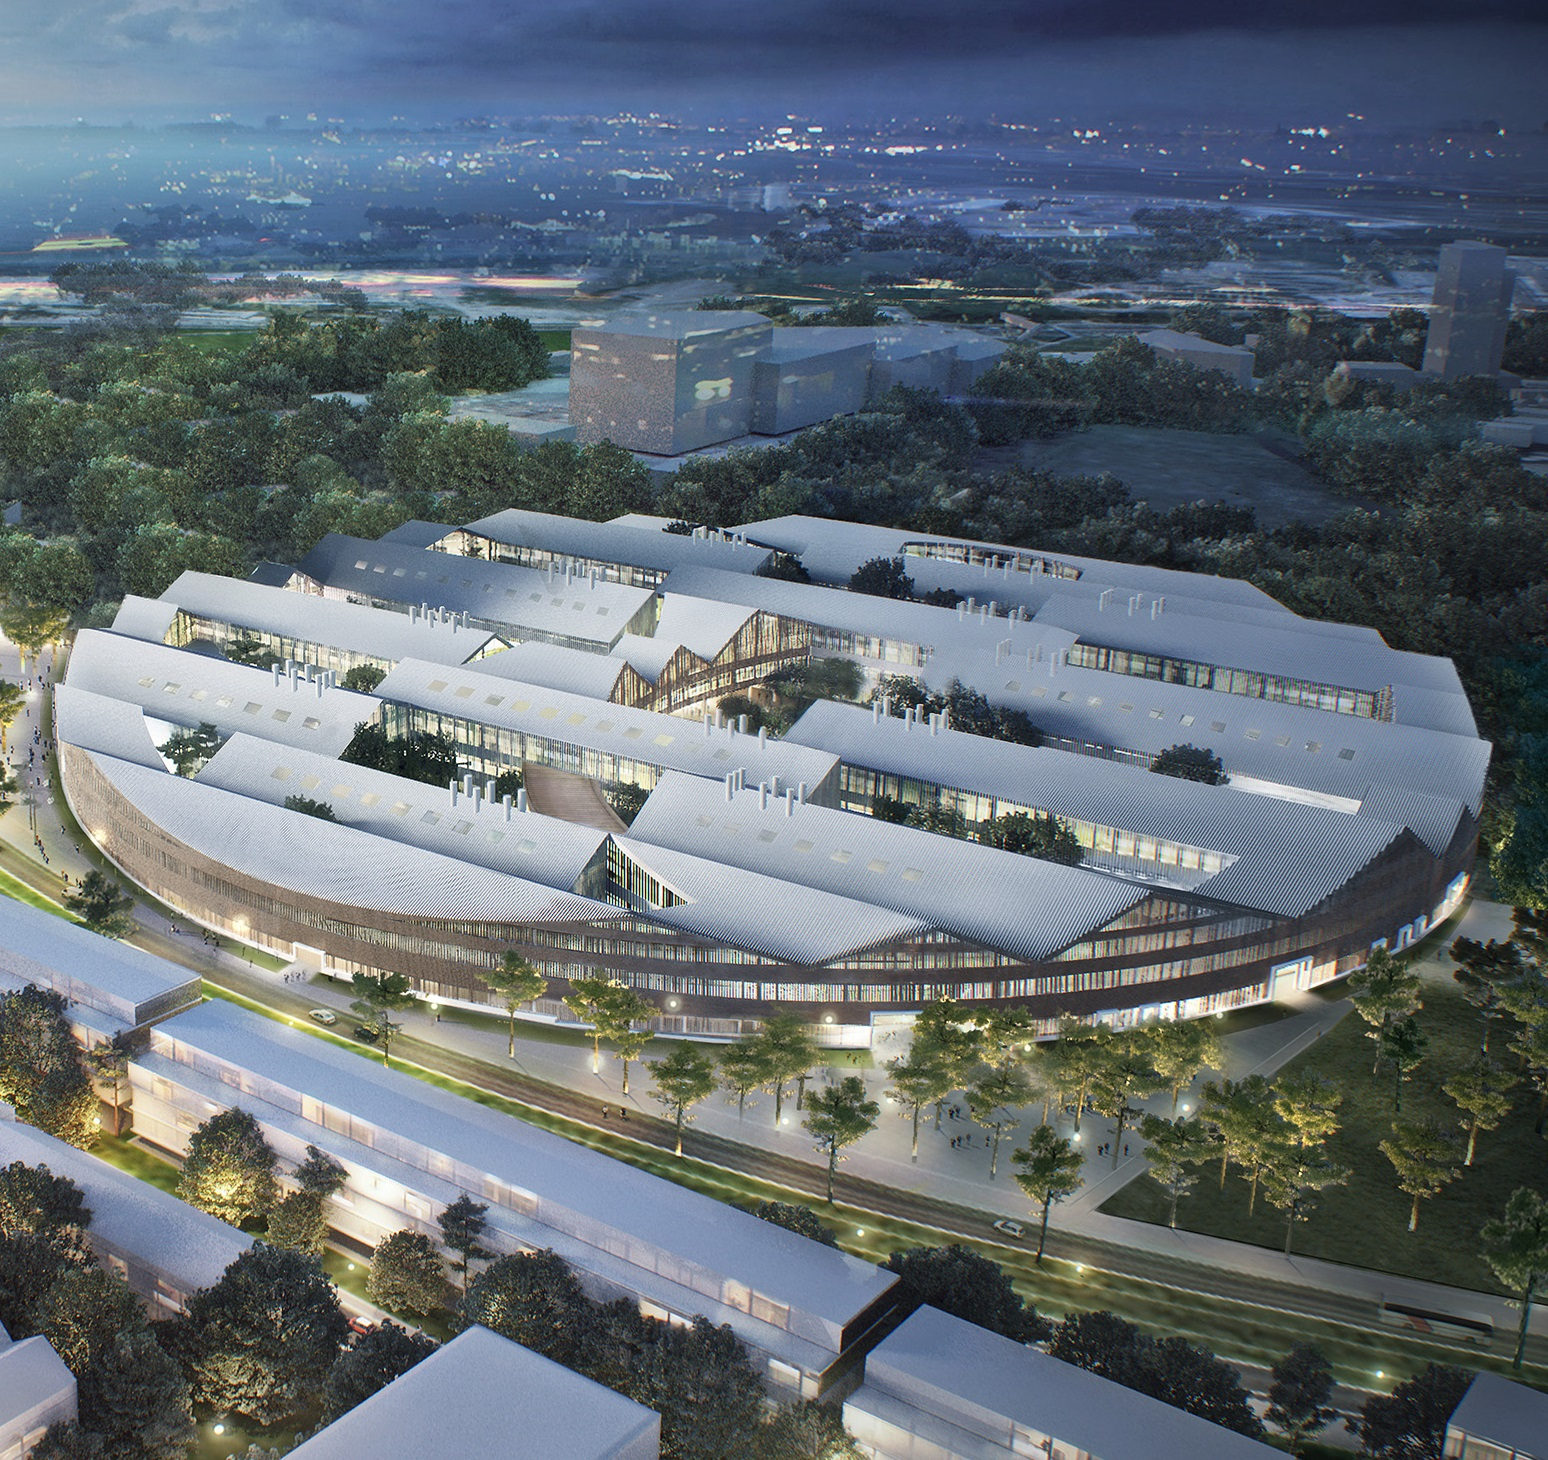 Skoltech's new state-of-the-art campus, set to open in 2018. Image: Skoltech.